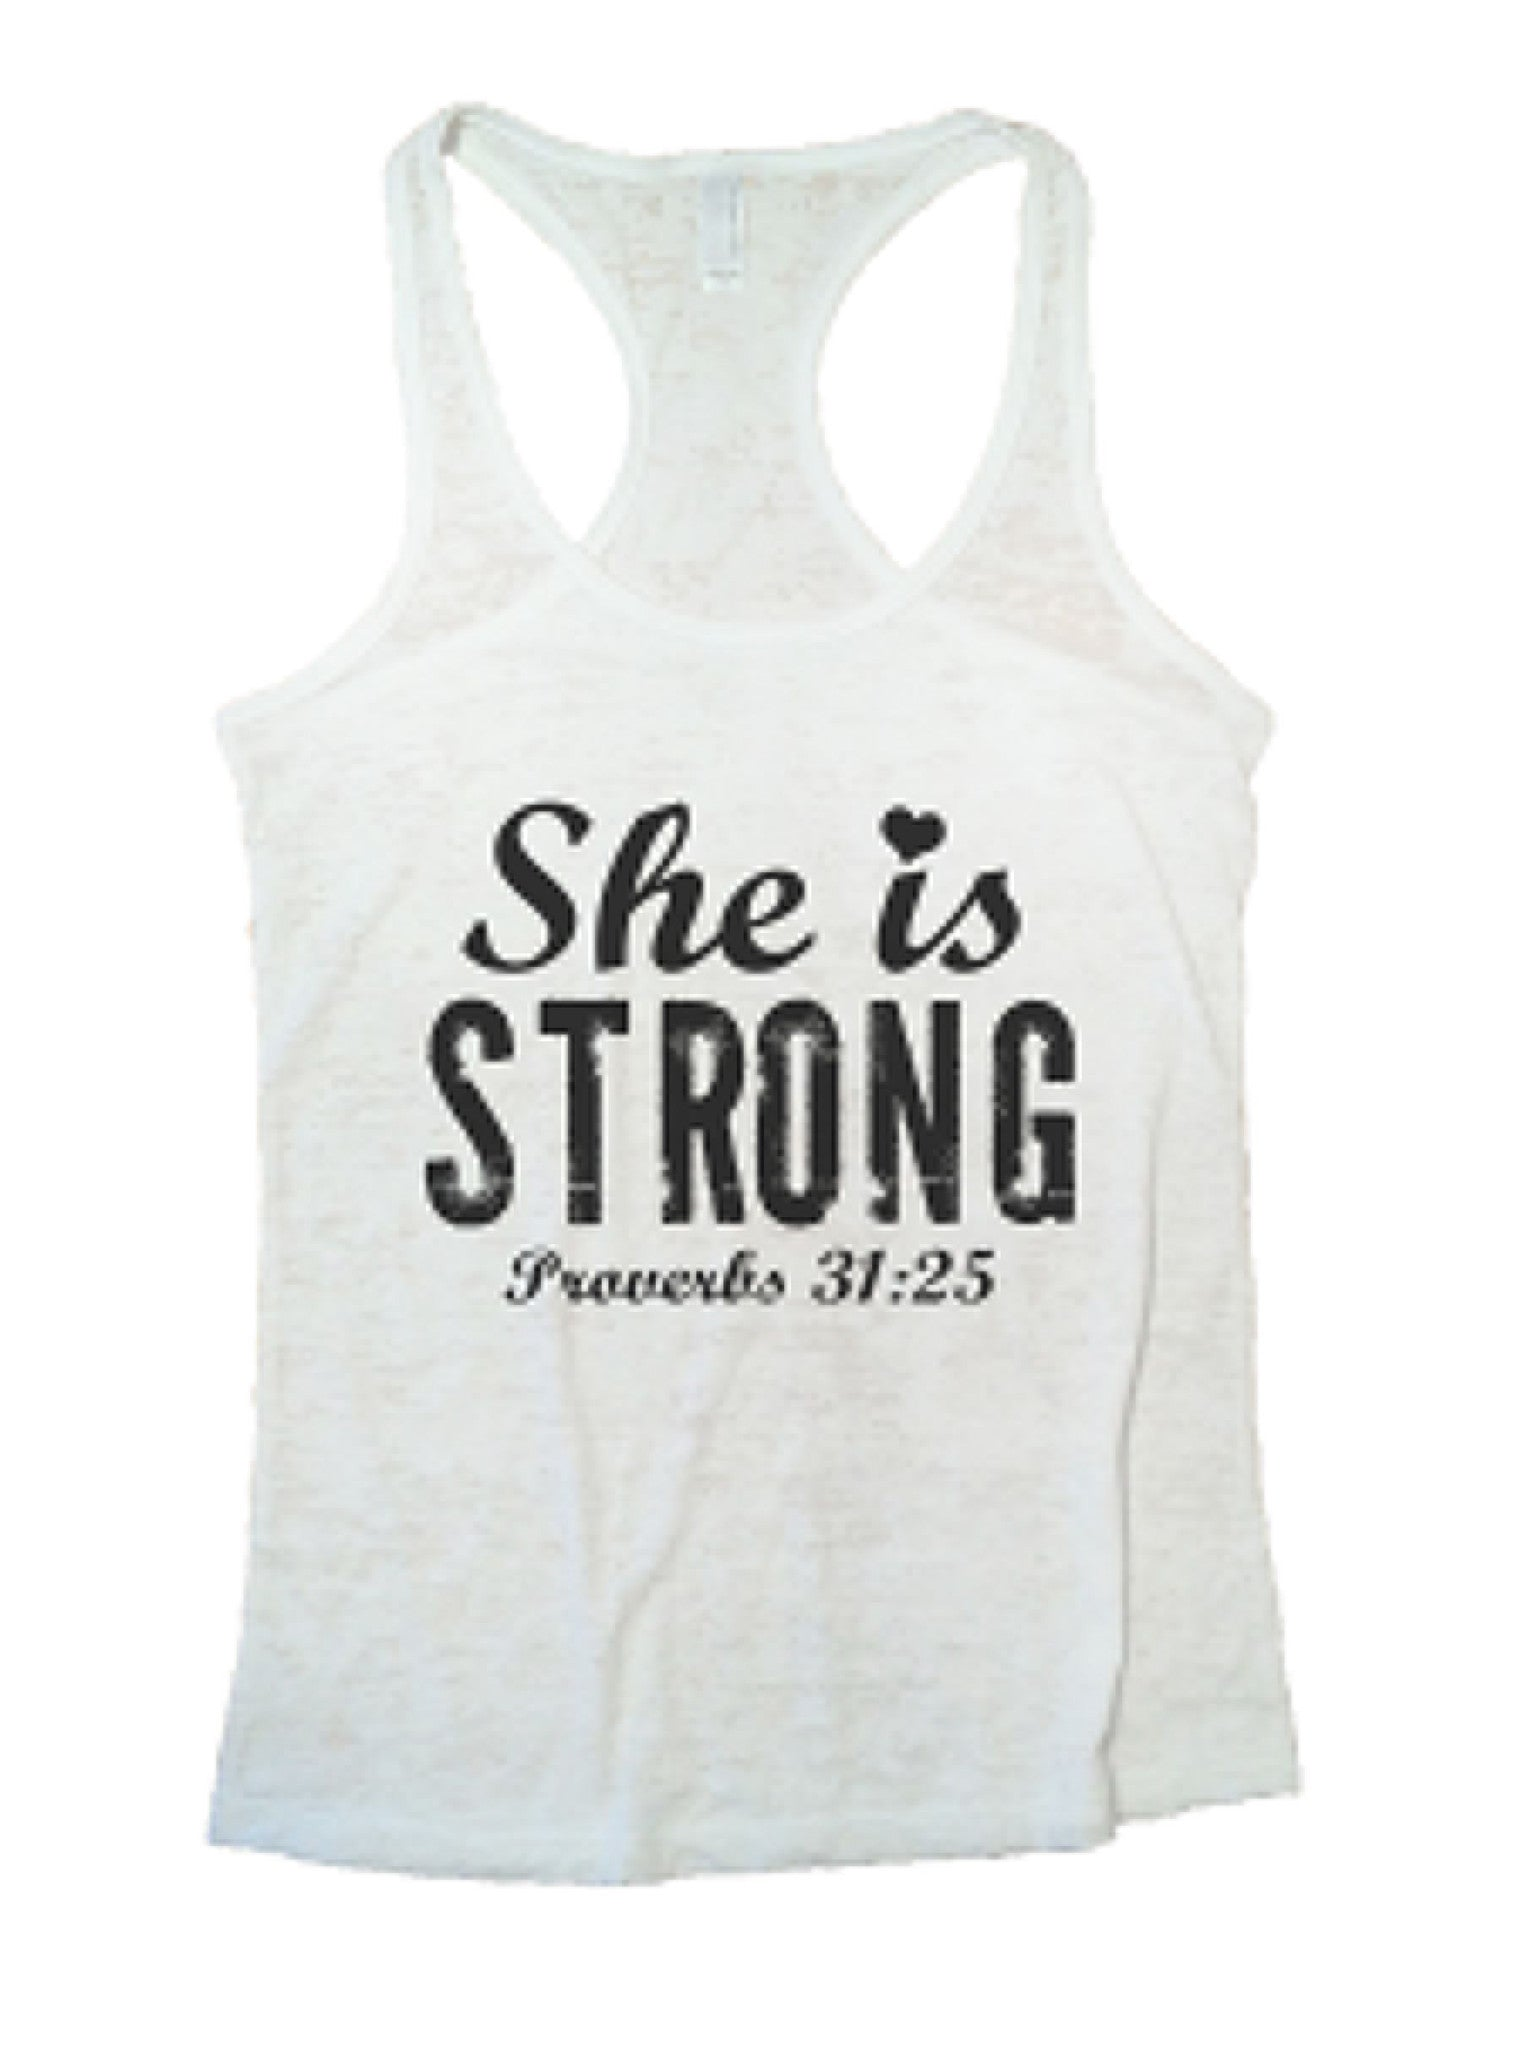 She Is Strong Proverbs 31:25 Burnout Tank Top By BurnoutTankTops.com - 939 - Funny Shirts Tank Tops Burnouts and Triblends  - 6